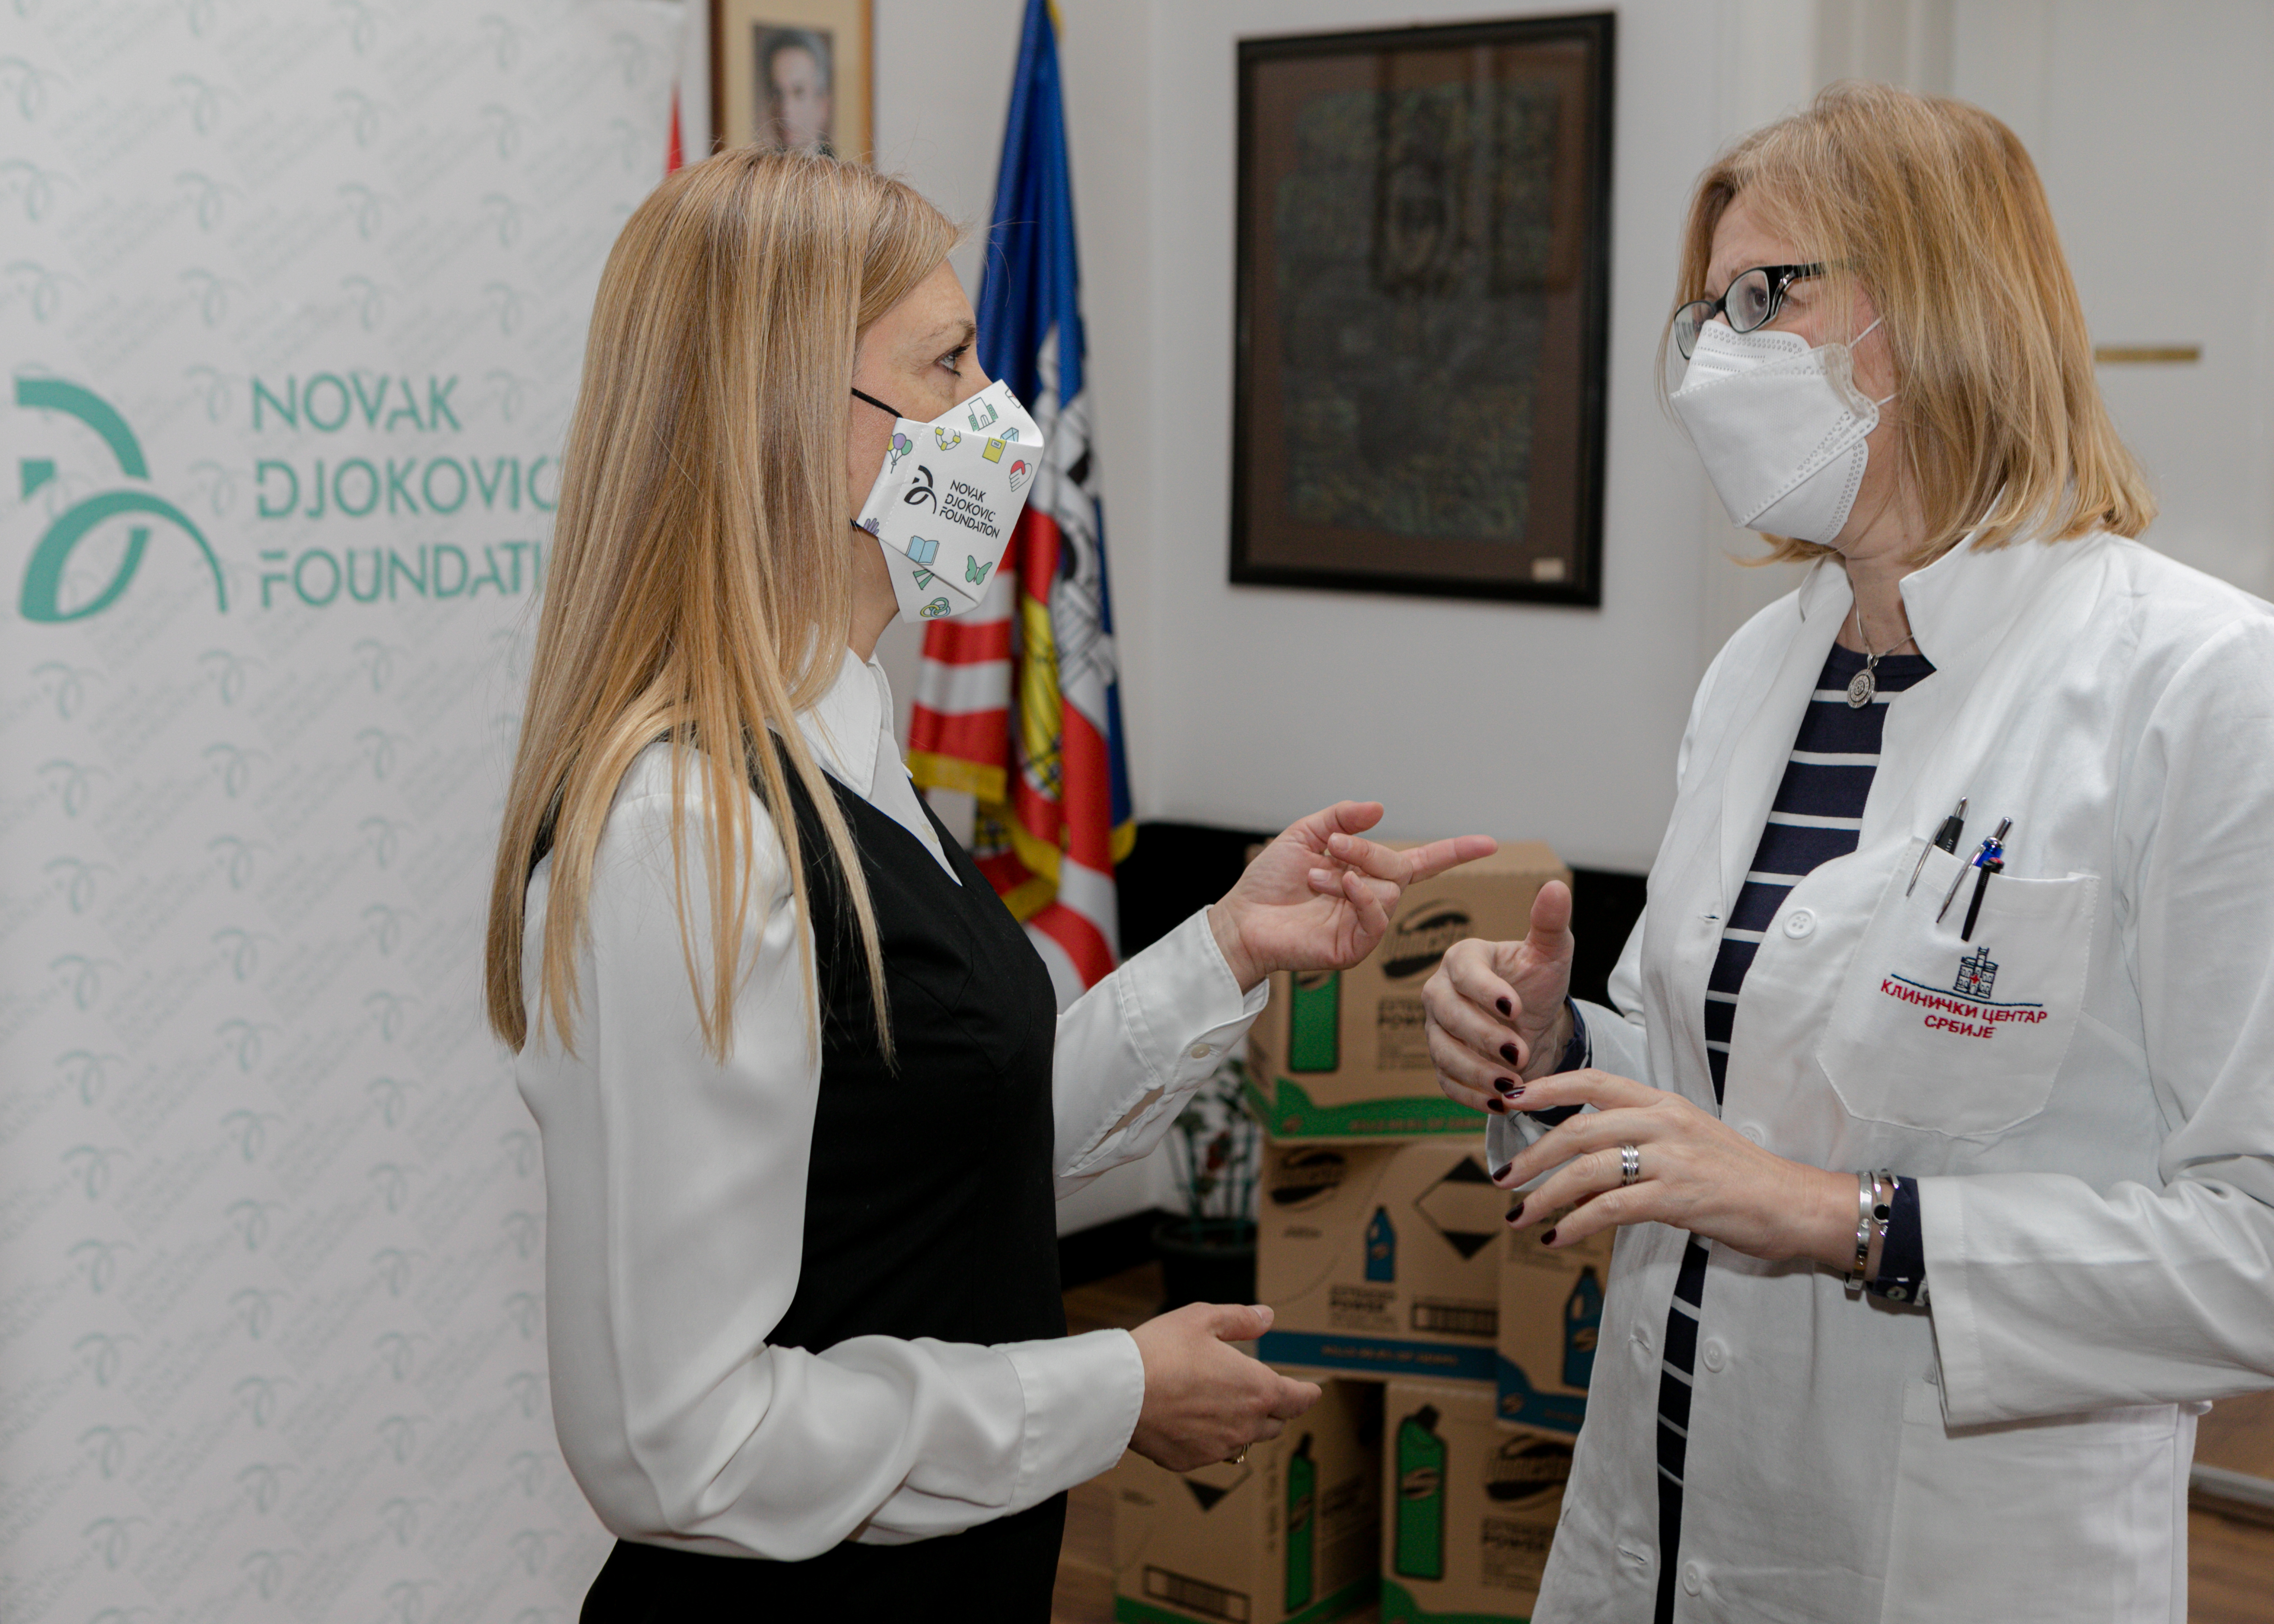 In cooperation with Unilever and distributor, Mercata VT we donated Domestos products worth over EUR 30,000.